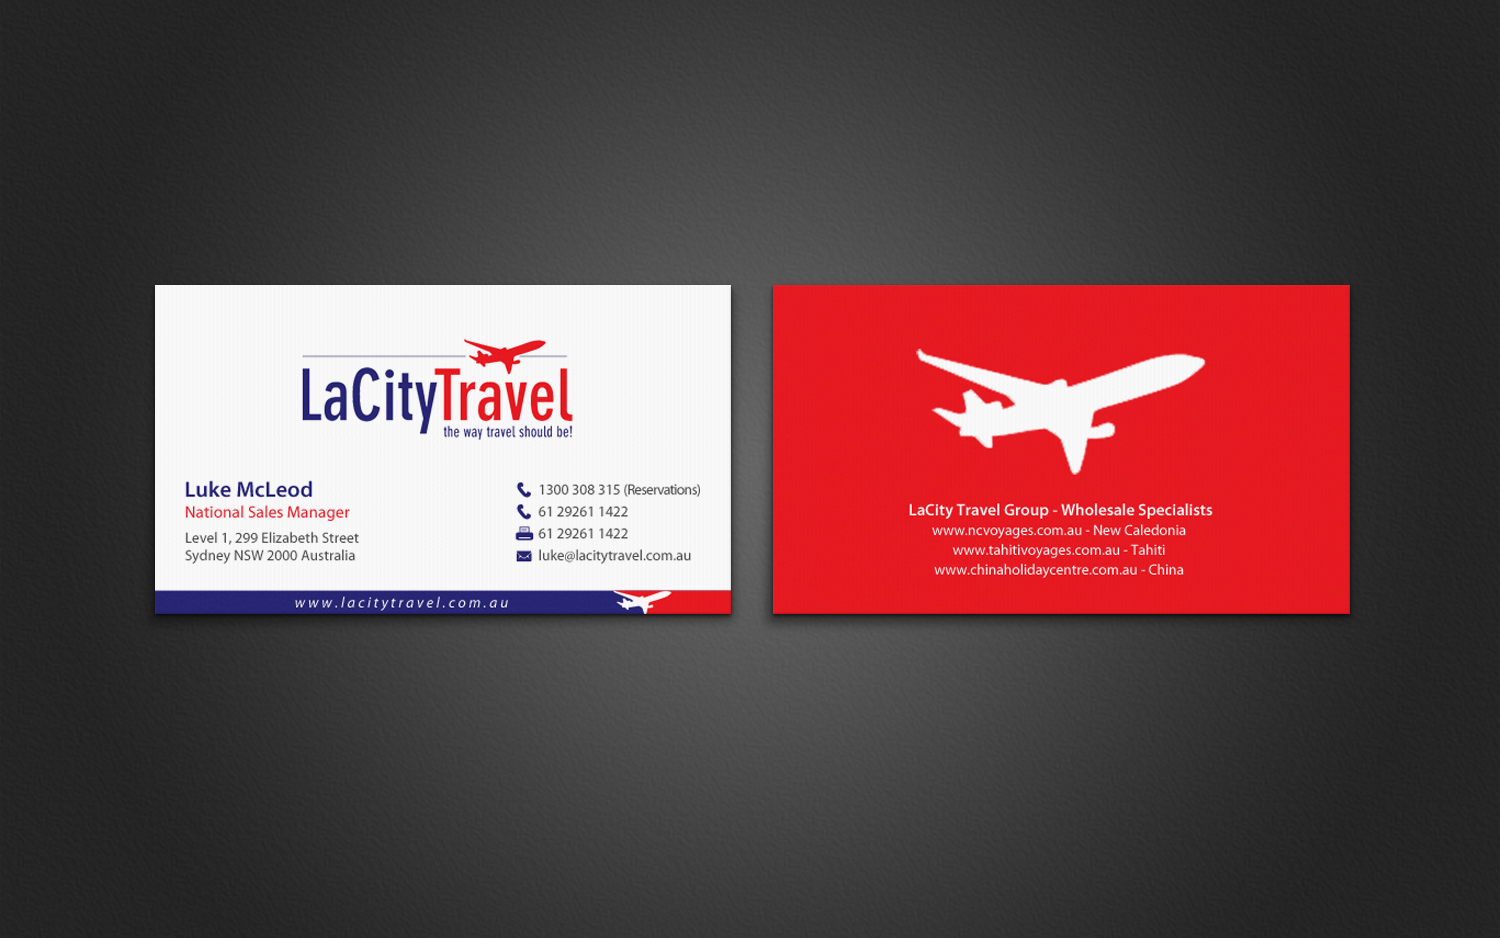 Modern professional travel agent business card design for lacity business card design by chandrayaaneative for lacity travel australia design 8016656 colourmoves